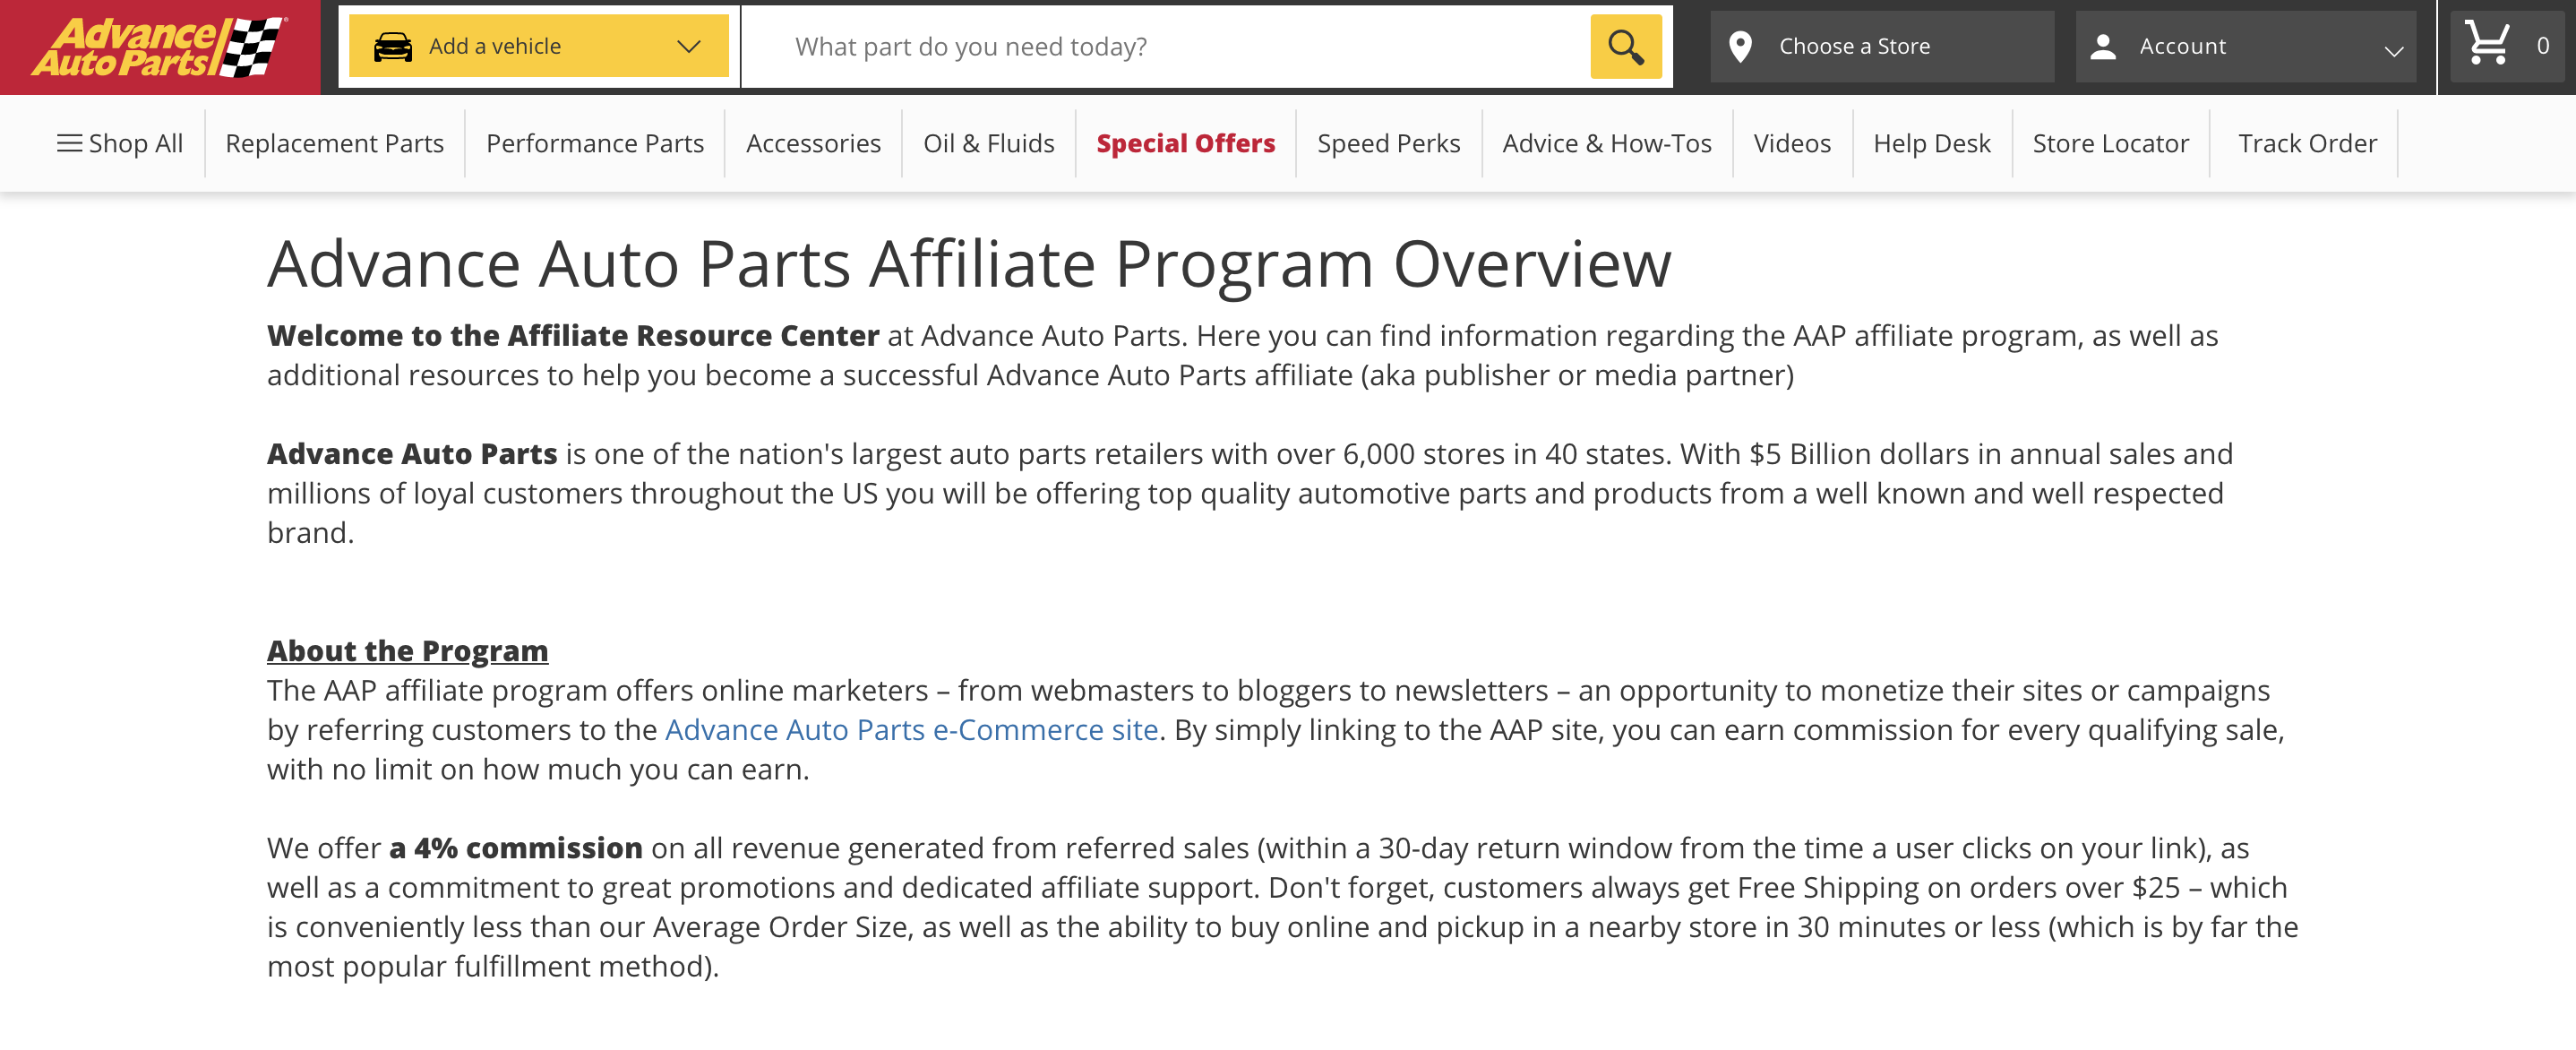 Advanced Auto Parts Affiliates